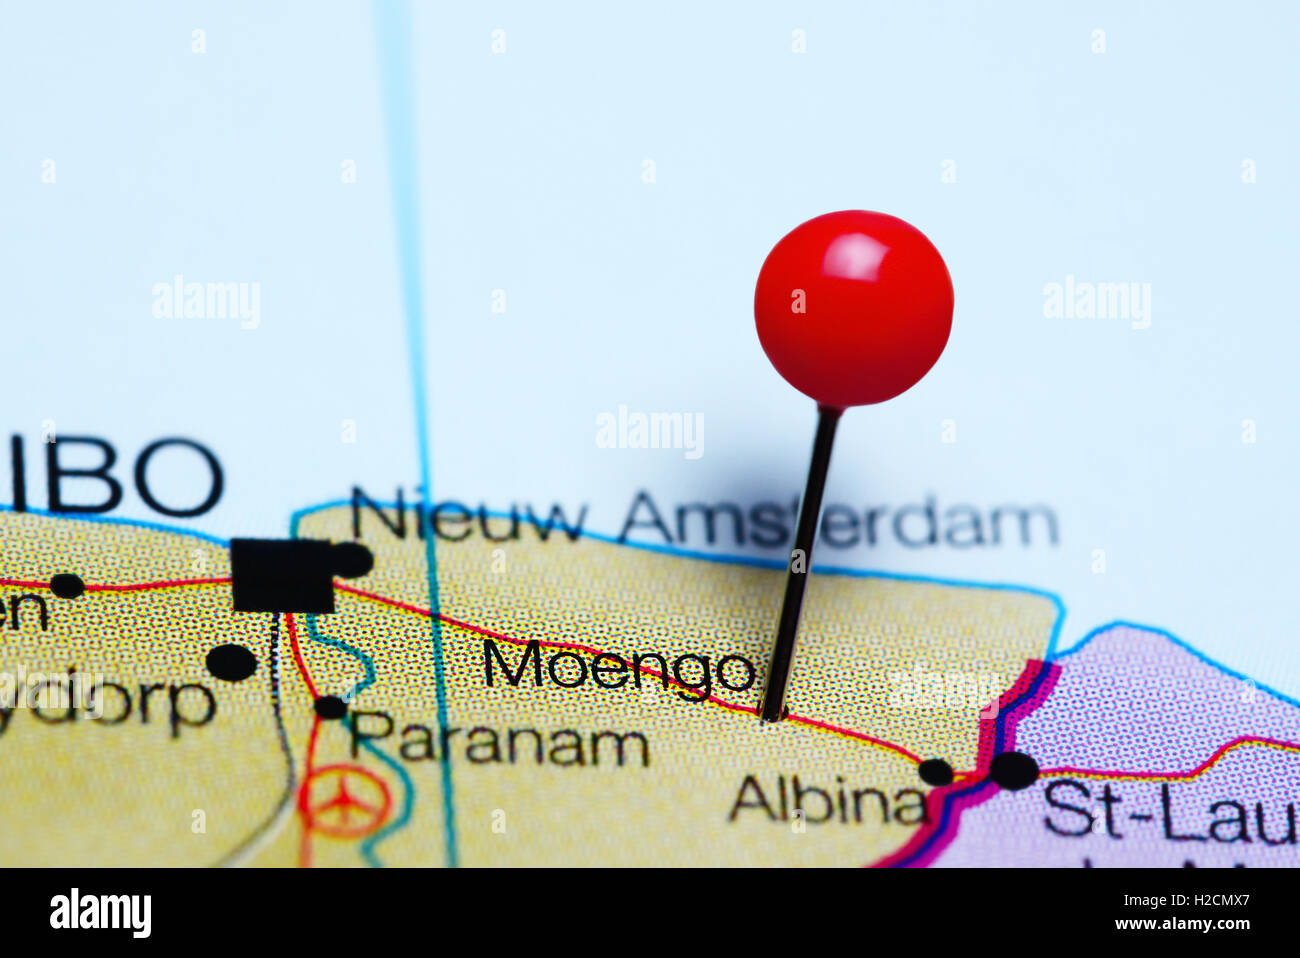 Moengo pinned on a map of Suriname - Stock Image